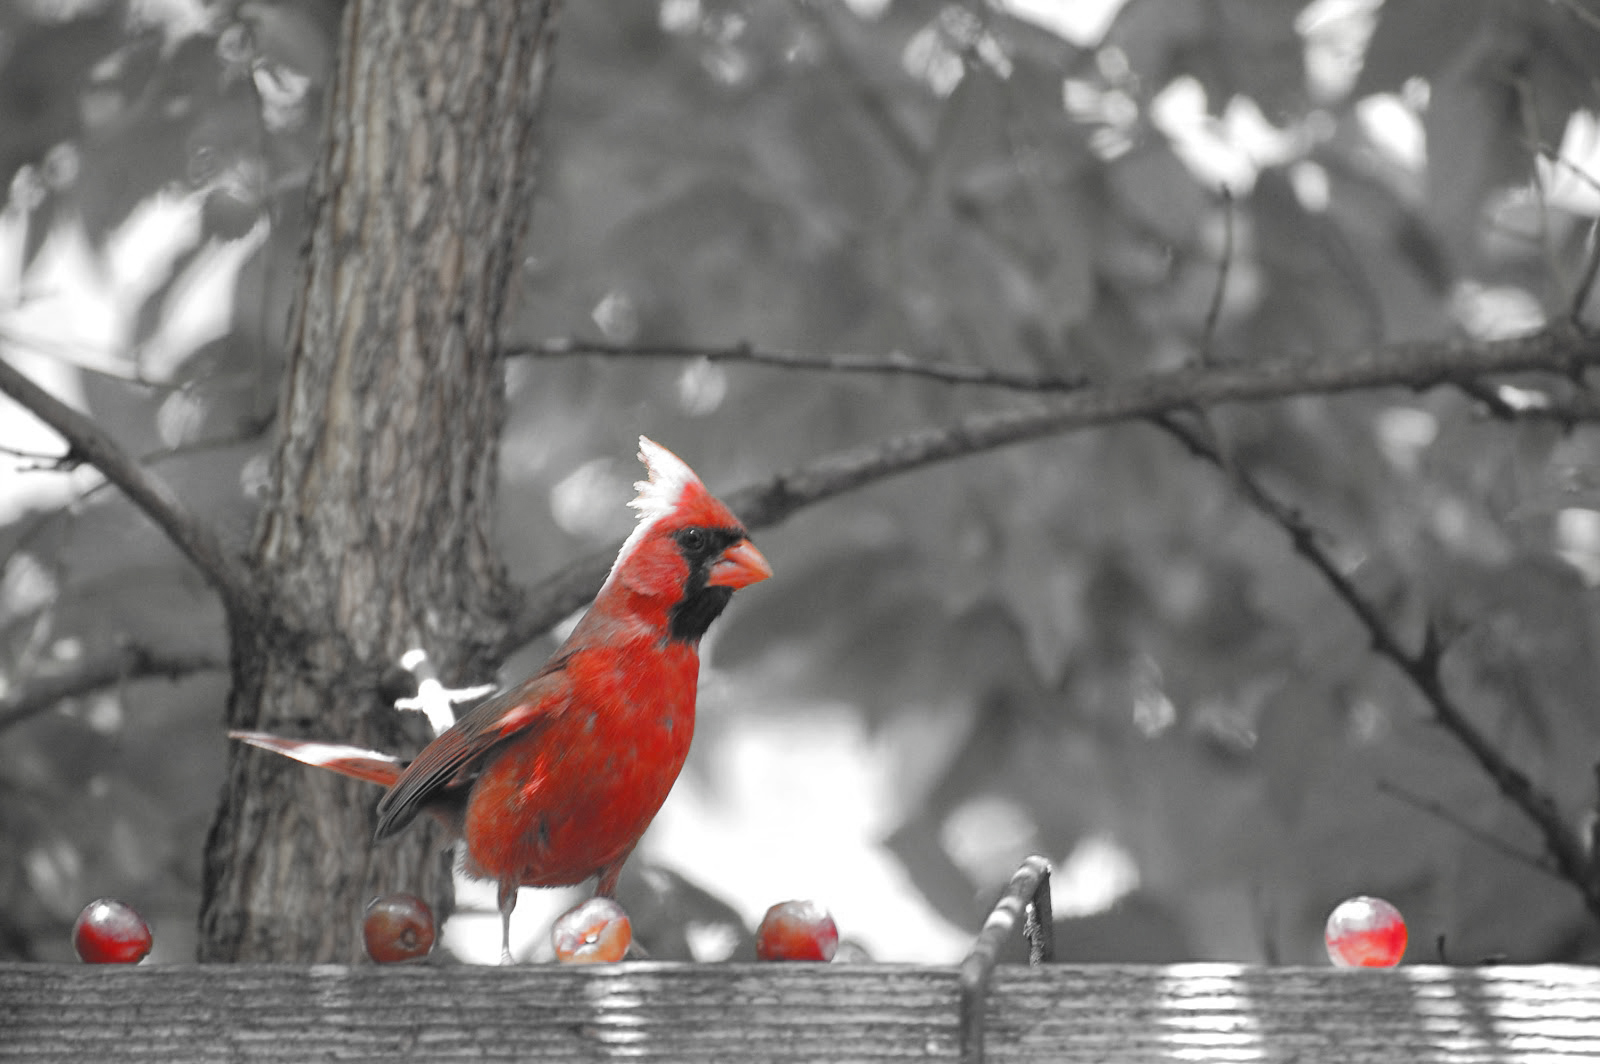 Appreciating Cardinals